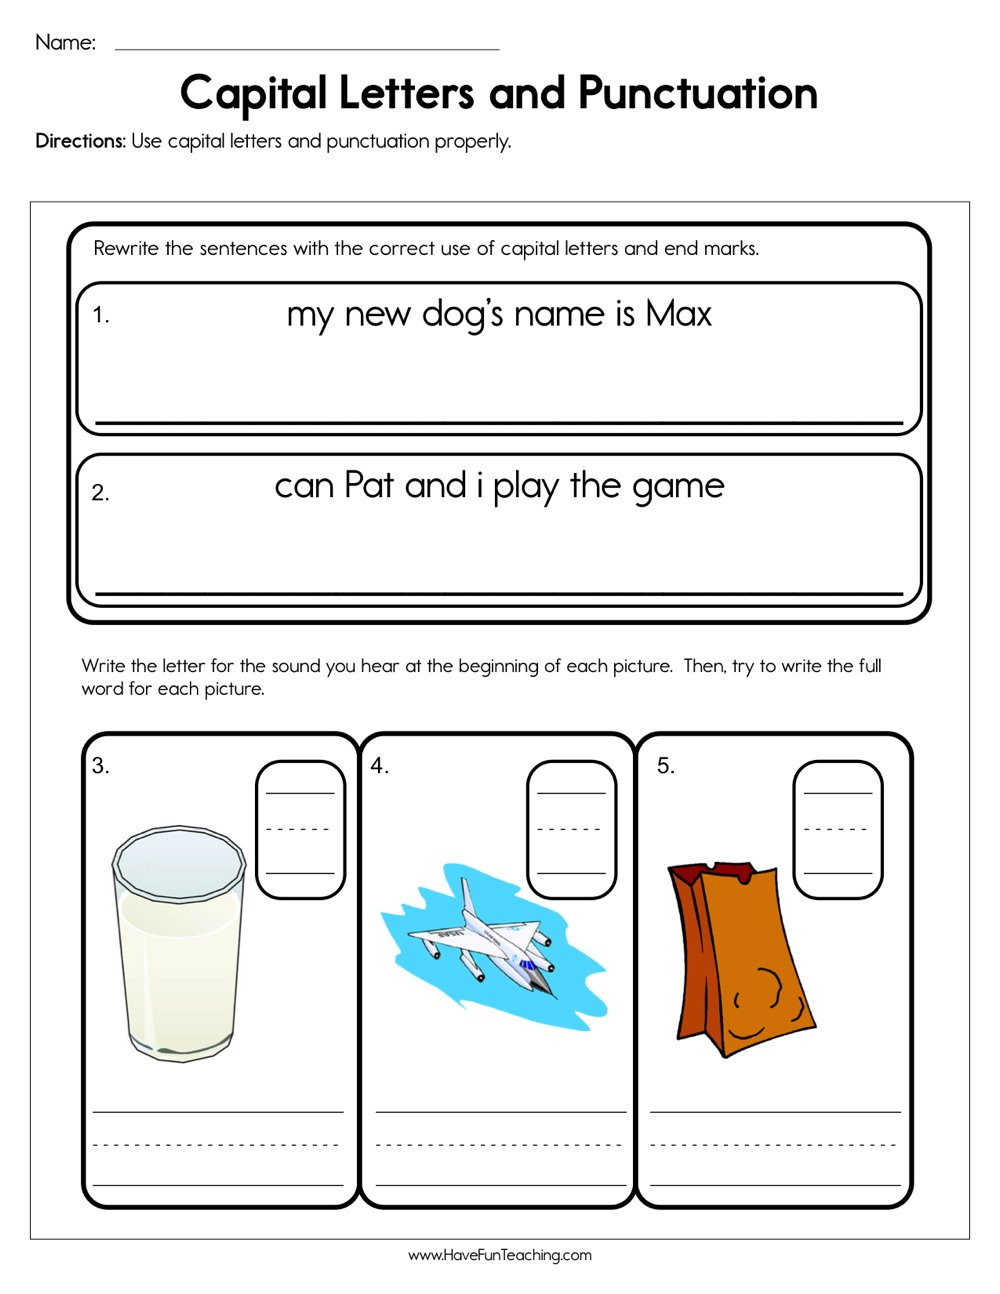 First Grade Punctuation Worksheets Capital Letters and Punctuation Worksheet